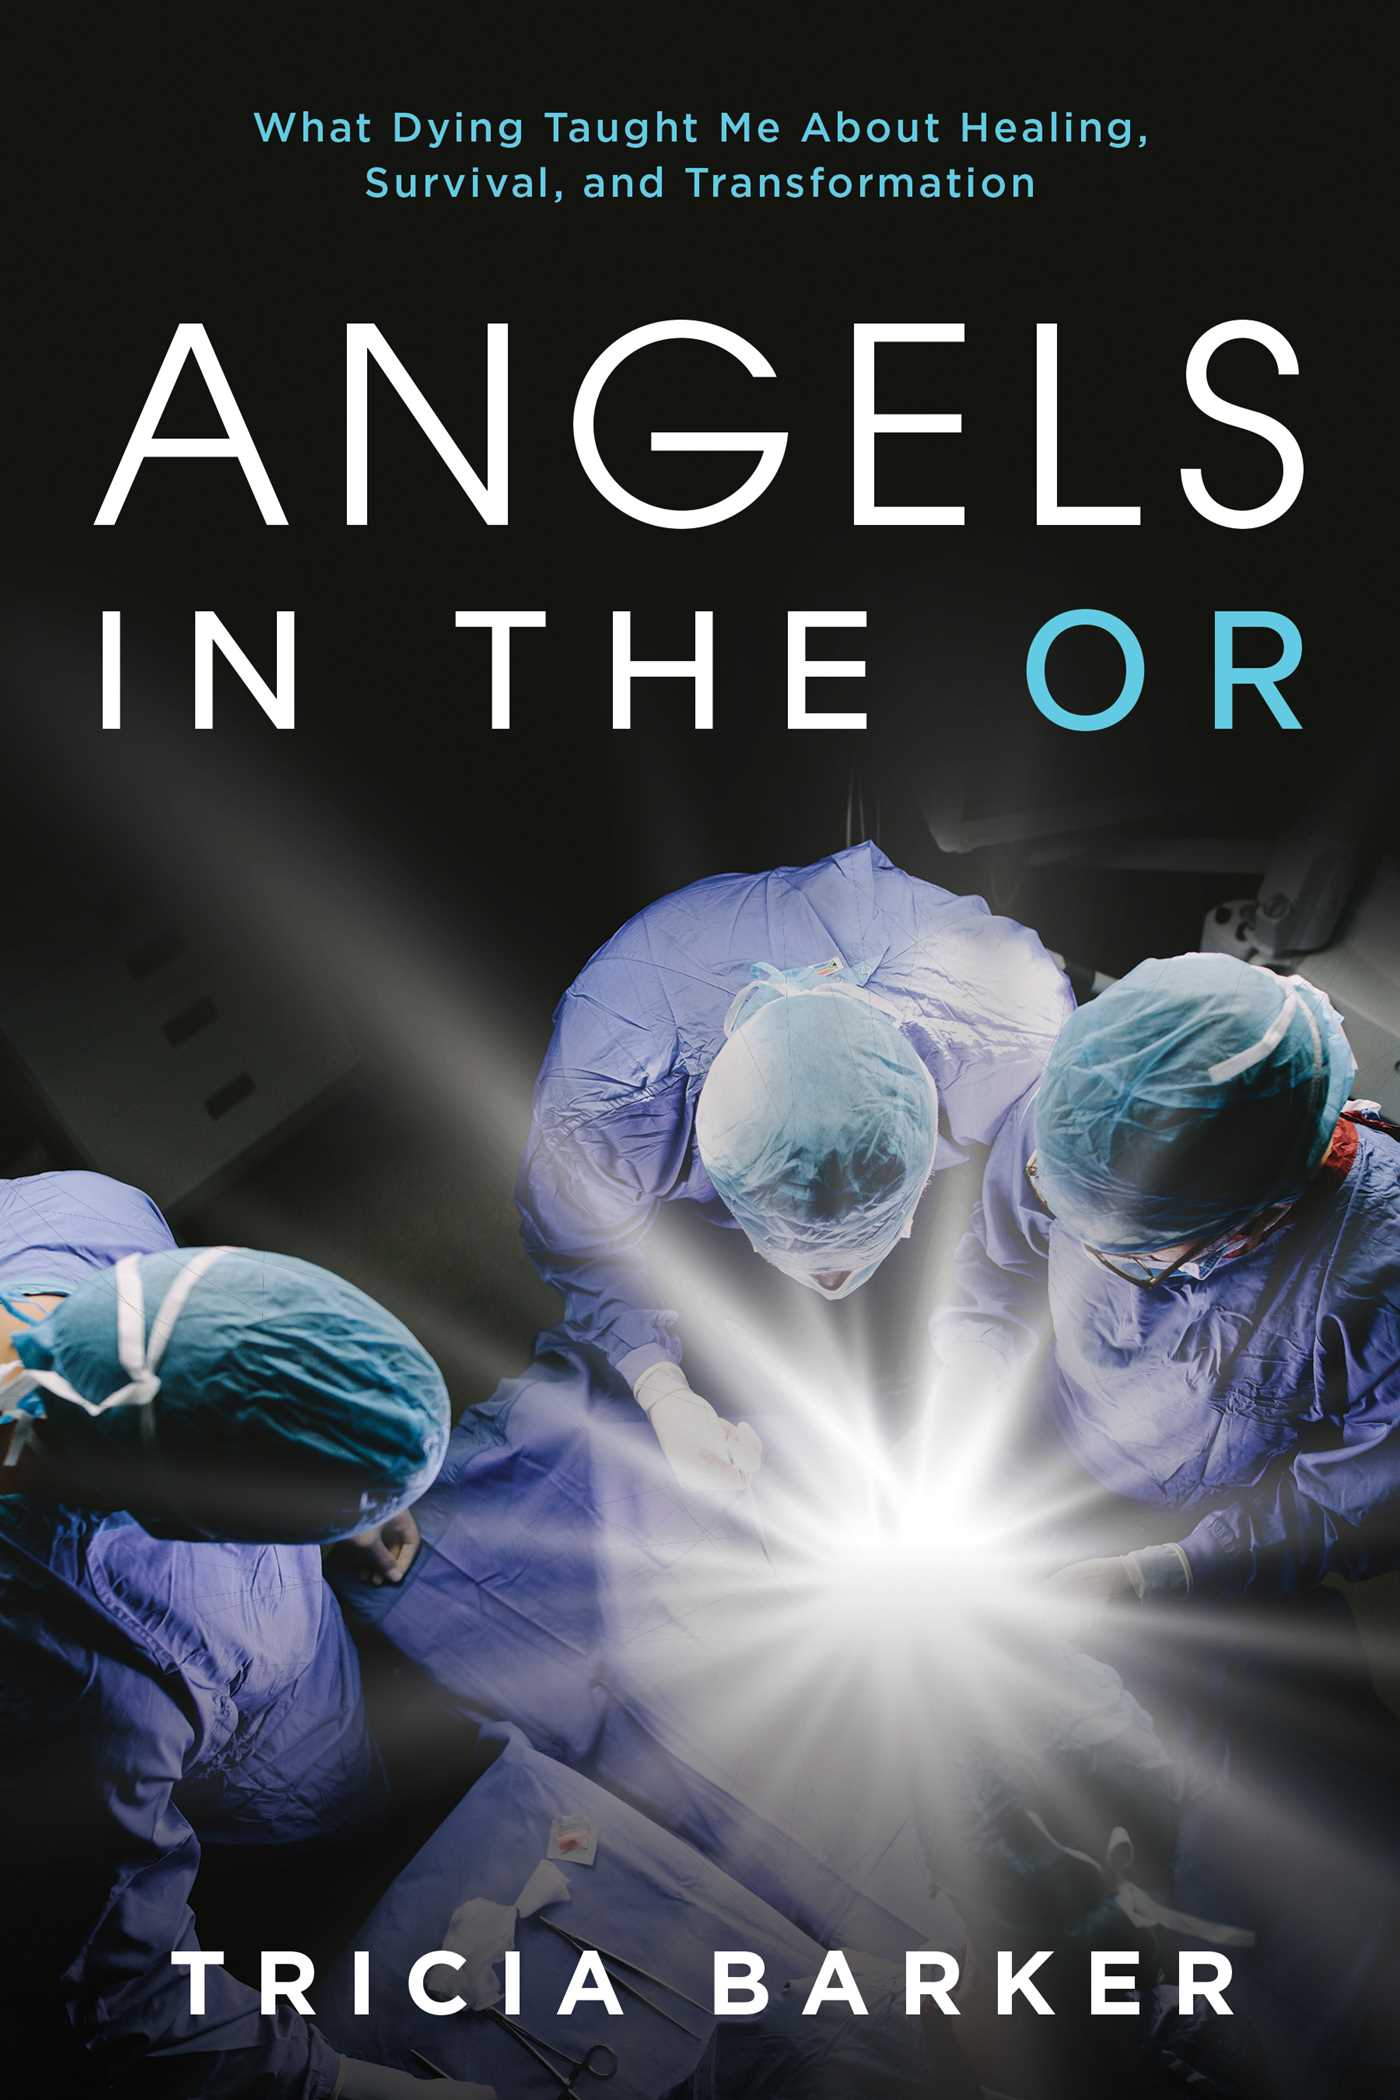 Image Book Angels In The Or Book By Tricia Barker Official Publisher Page